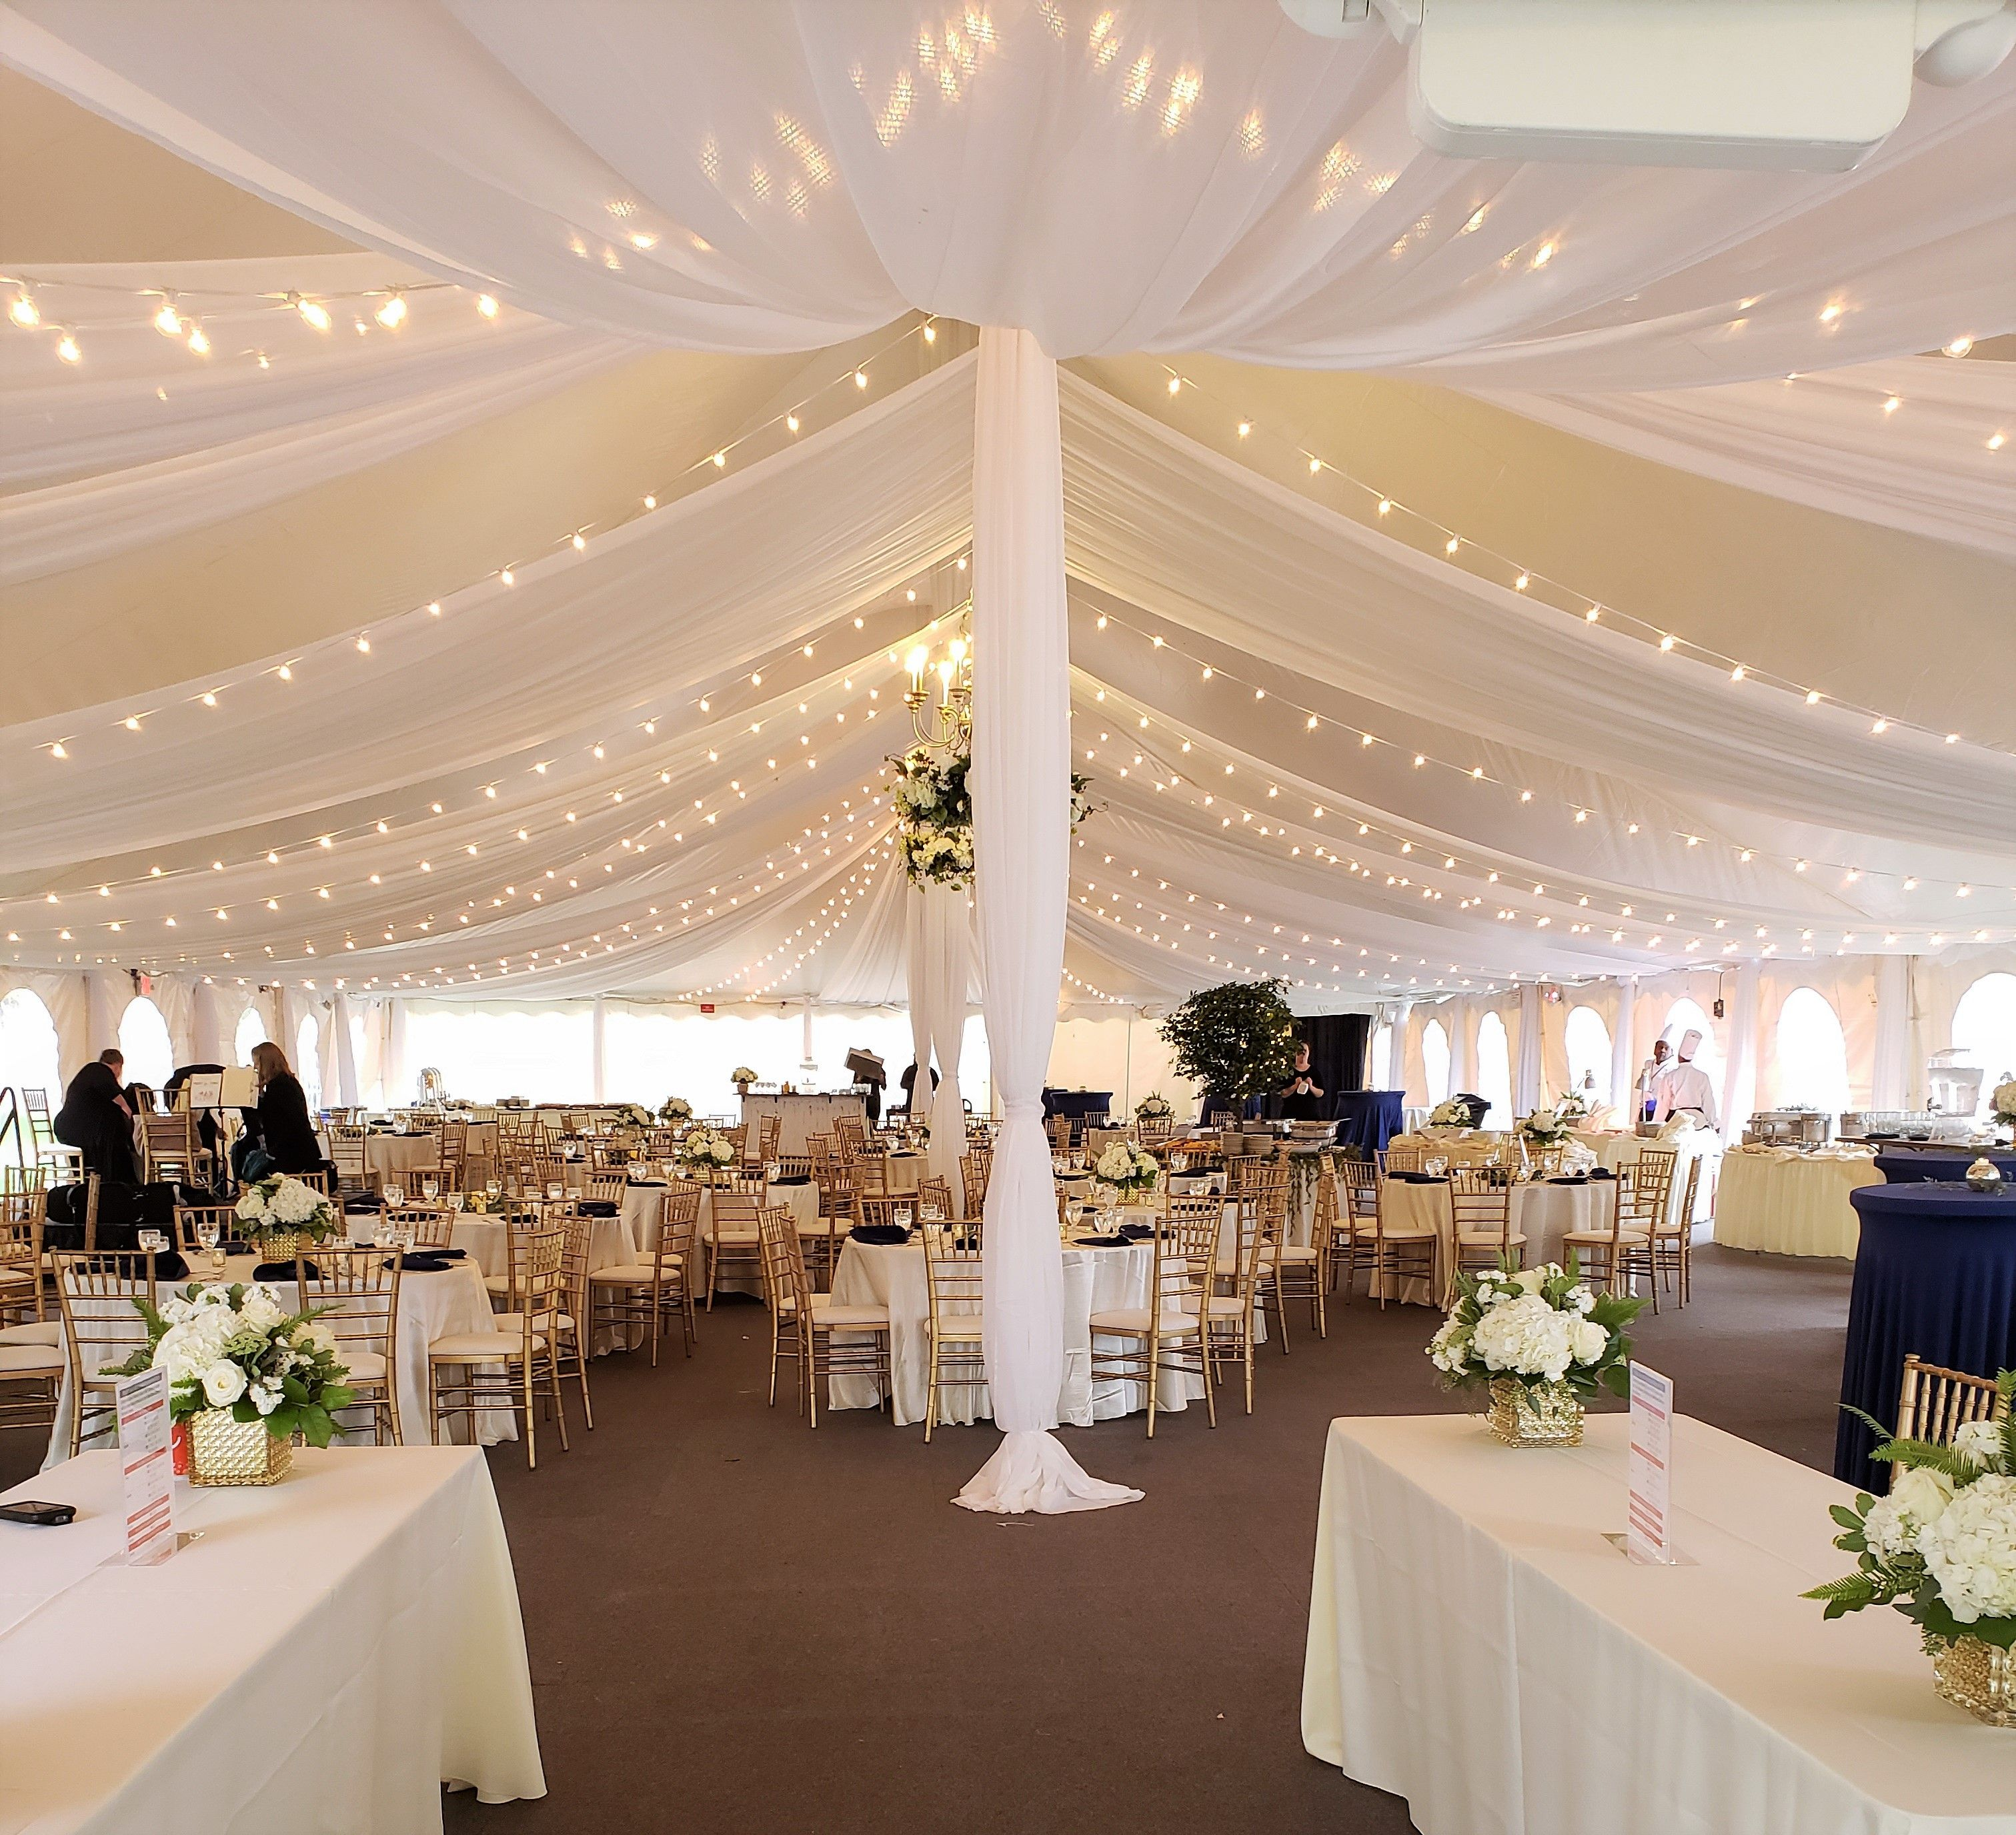 Tent Draping With Bistro Lights In A Stake And Pole Tent Wedding Tent Draping Tent Decorations Ceiling Draping